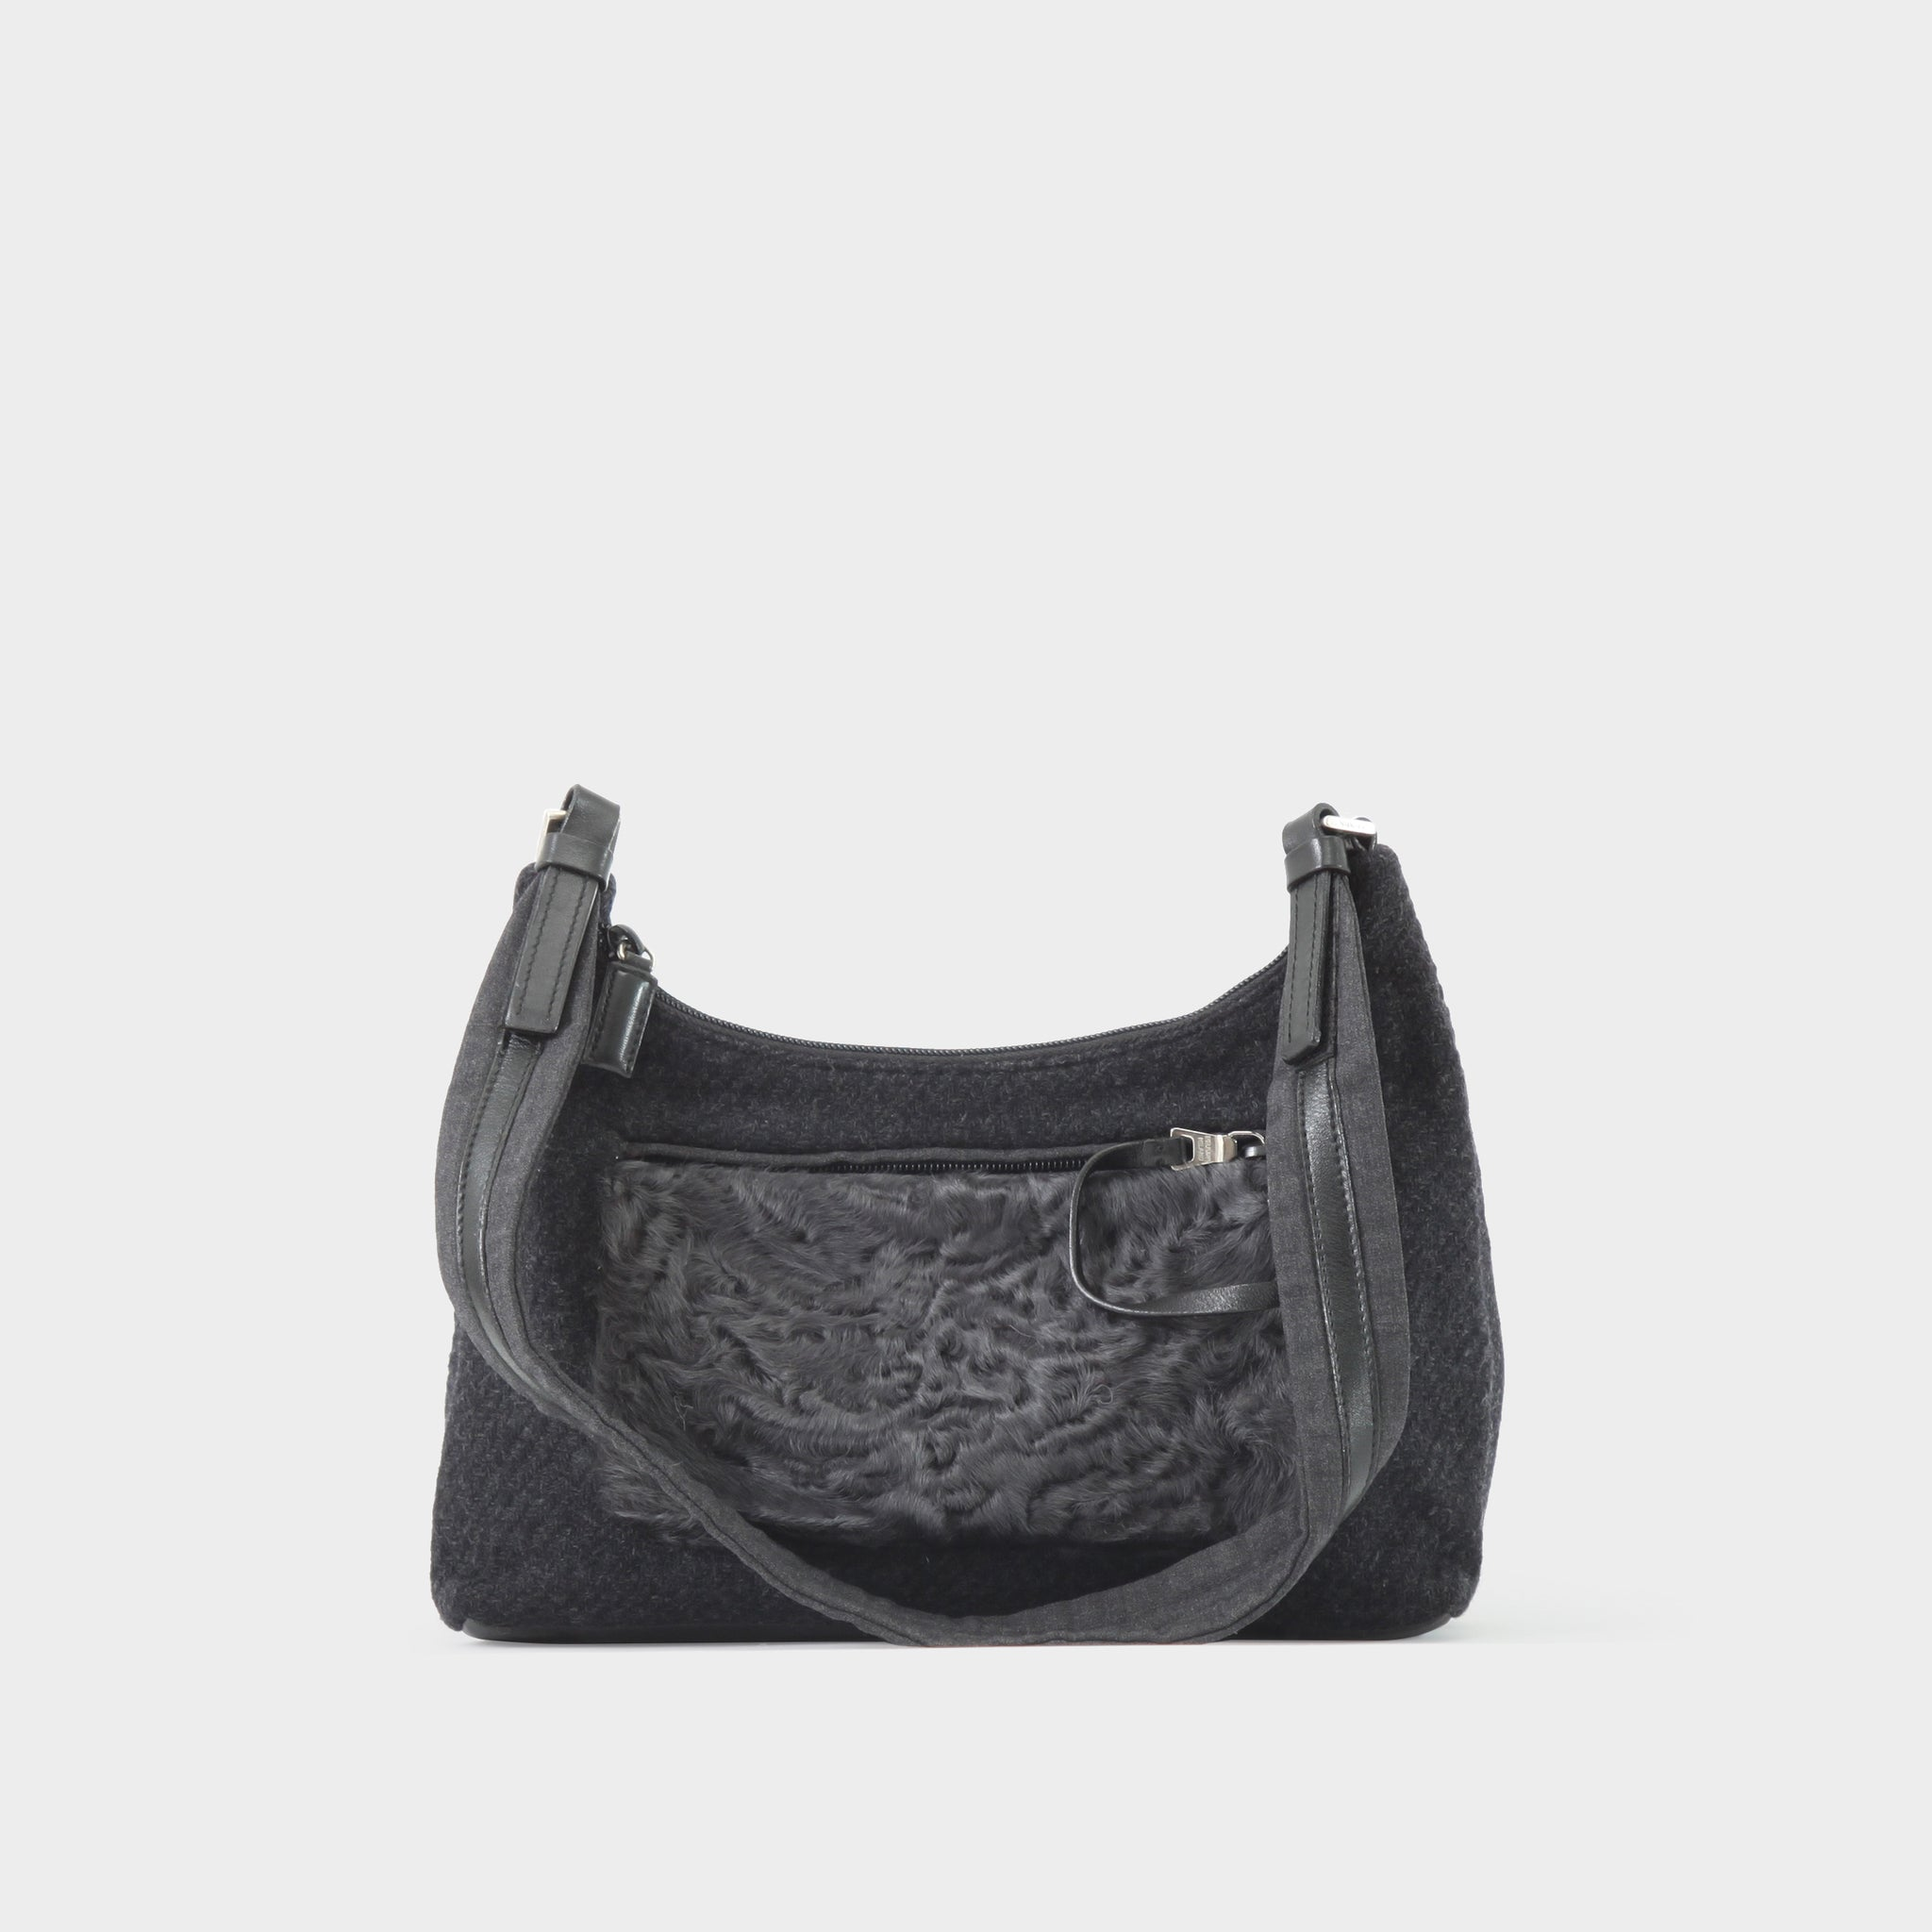 Prada Black Wool Bag